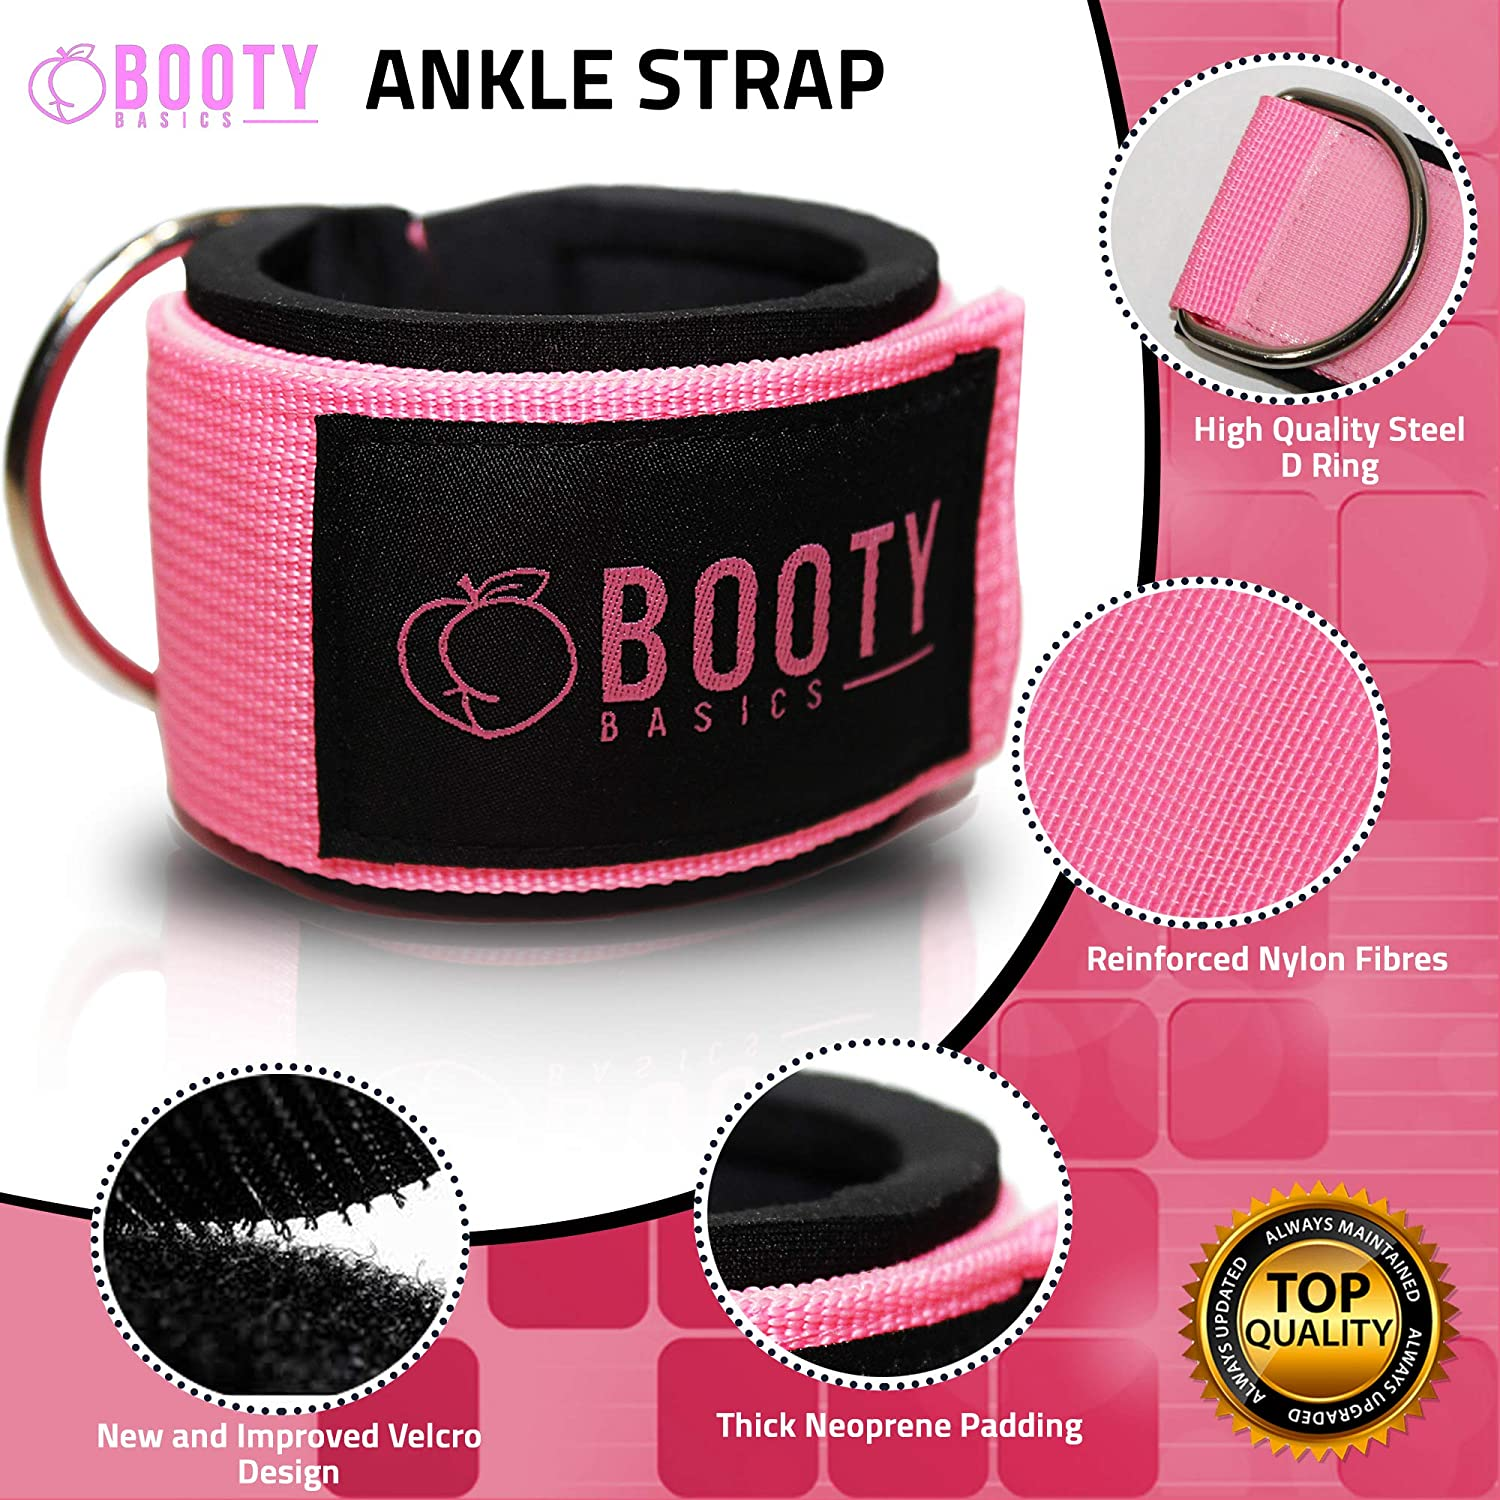 Fitness Ankle Strap for Cable Machines Padded Ankle Attachment for Women for Leg and Glute Workouts Booty Basics